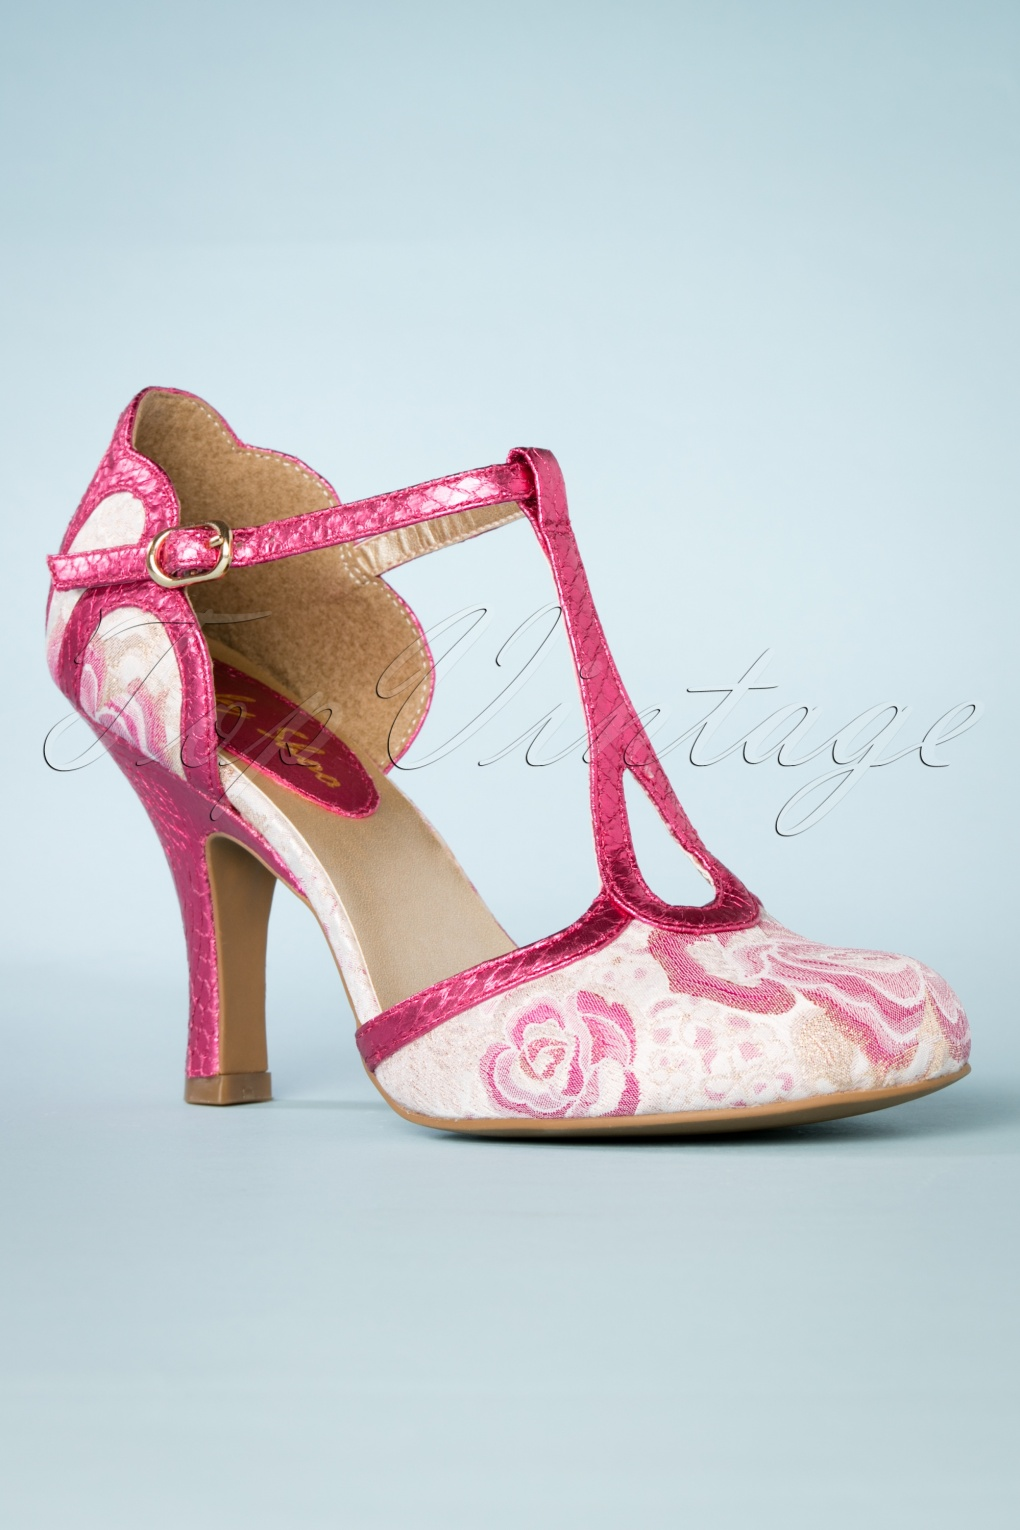 1950s Style Shoes | Heels, Flats, Saddle Shoes 50s Polly T-Strap Pumps in Fuchsia £70.25 AT vintagedancer.com